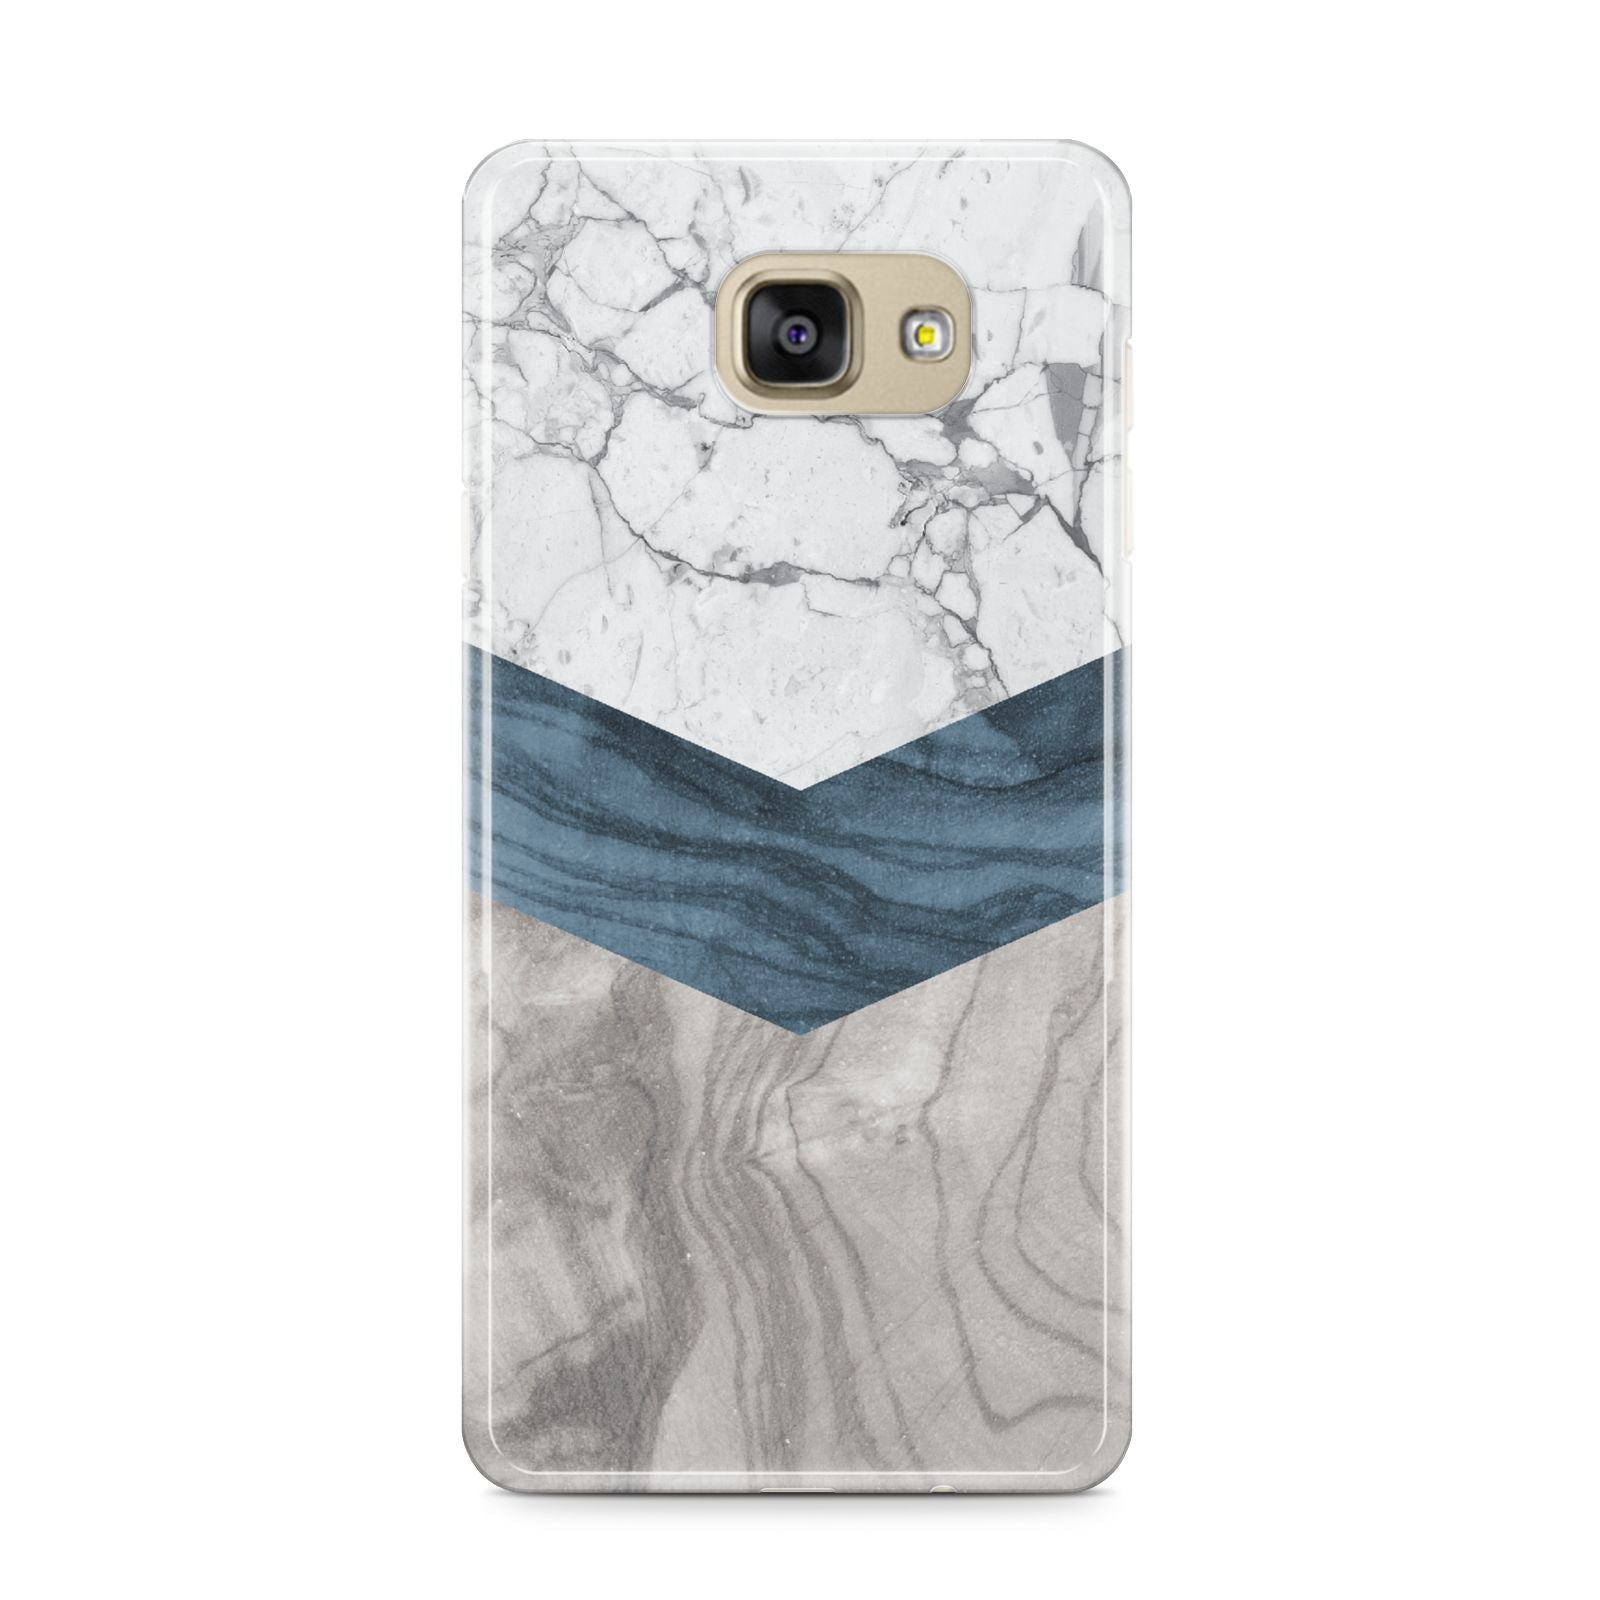 Marble Wood Geometric 8 Samsung Galaxy A9 2016 Case on gold phone